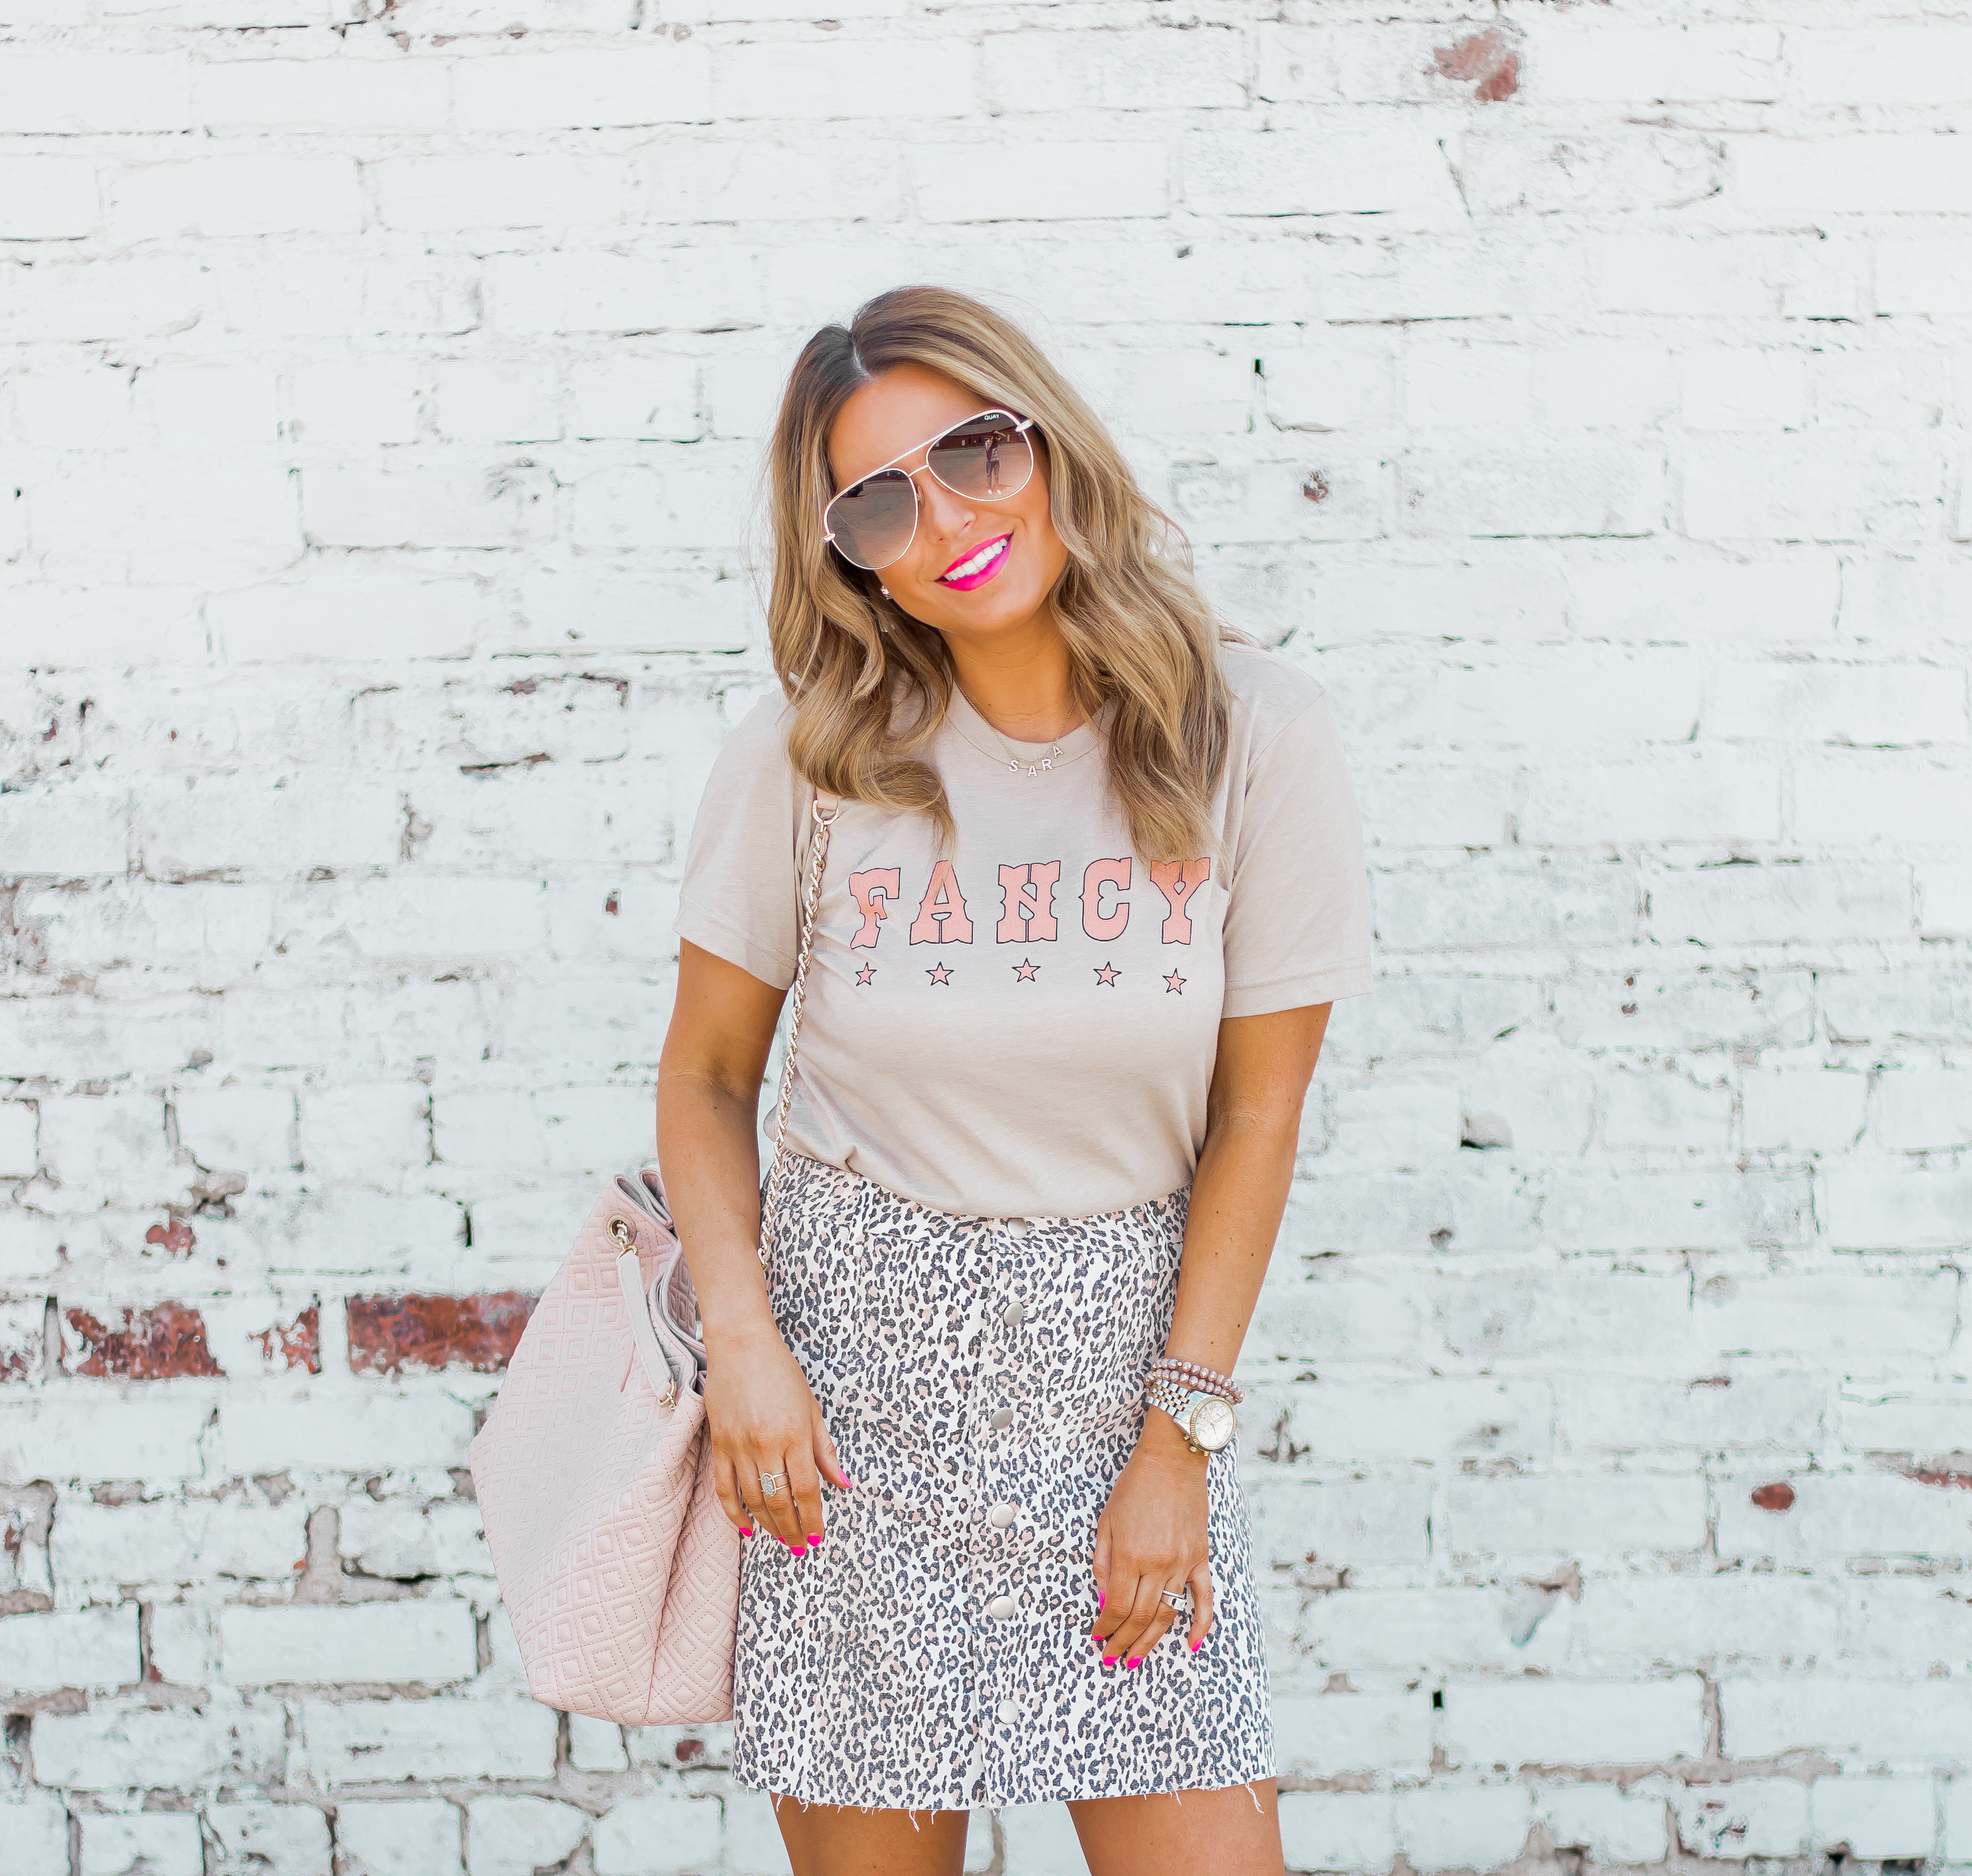 Fancy Graphic Tee-Leopard Skirt-Sugar Boutique-$250 Gift Card Giveaway-Tory Burch Fleming Bag-Quay Sunglasses-Sabby Style-Omaha Blogger-Women's Fashion-Spring Fashion-Summer Outfit-12